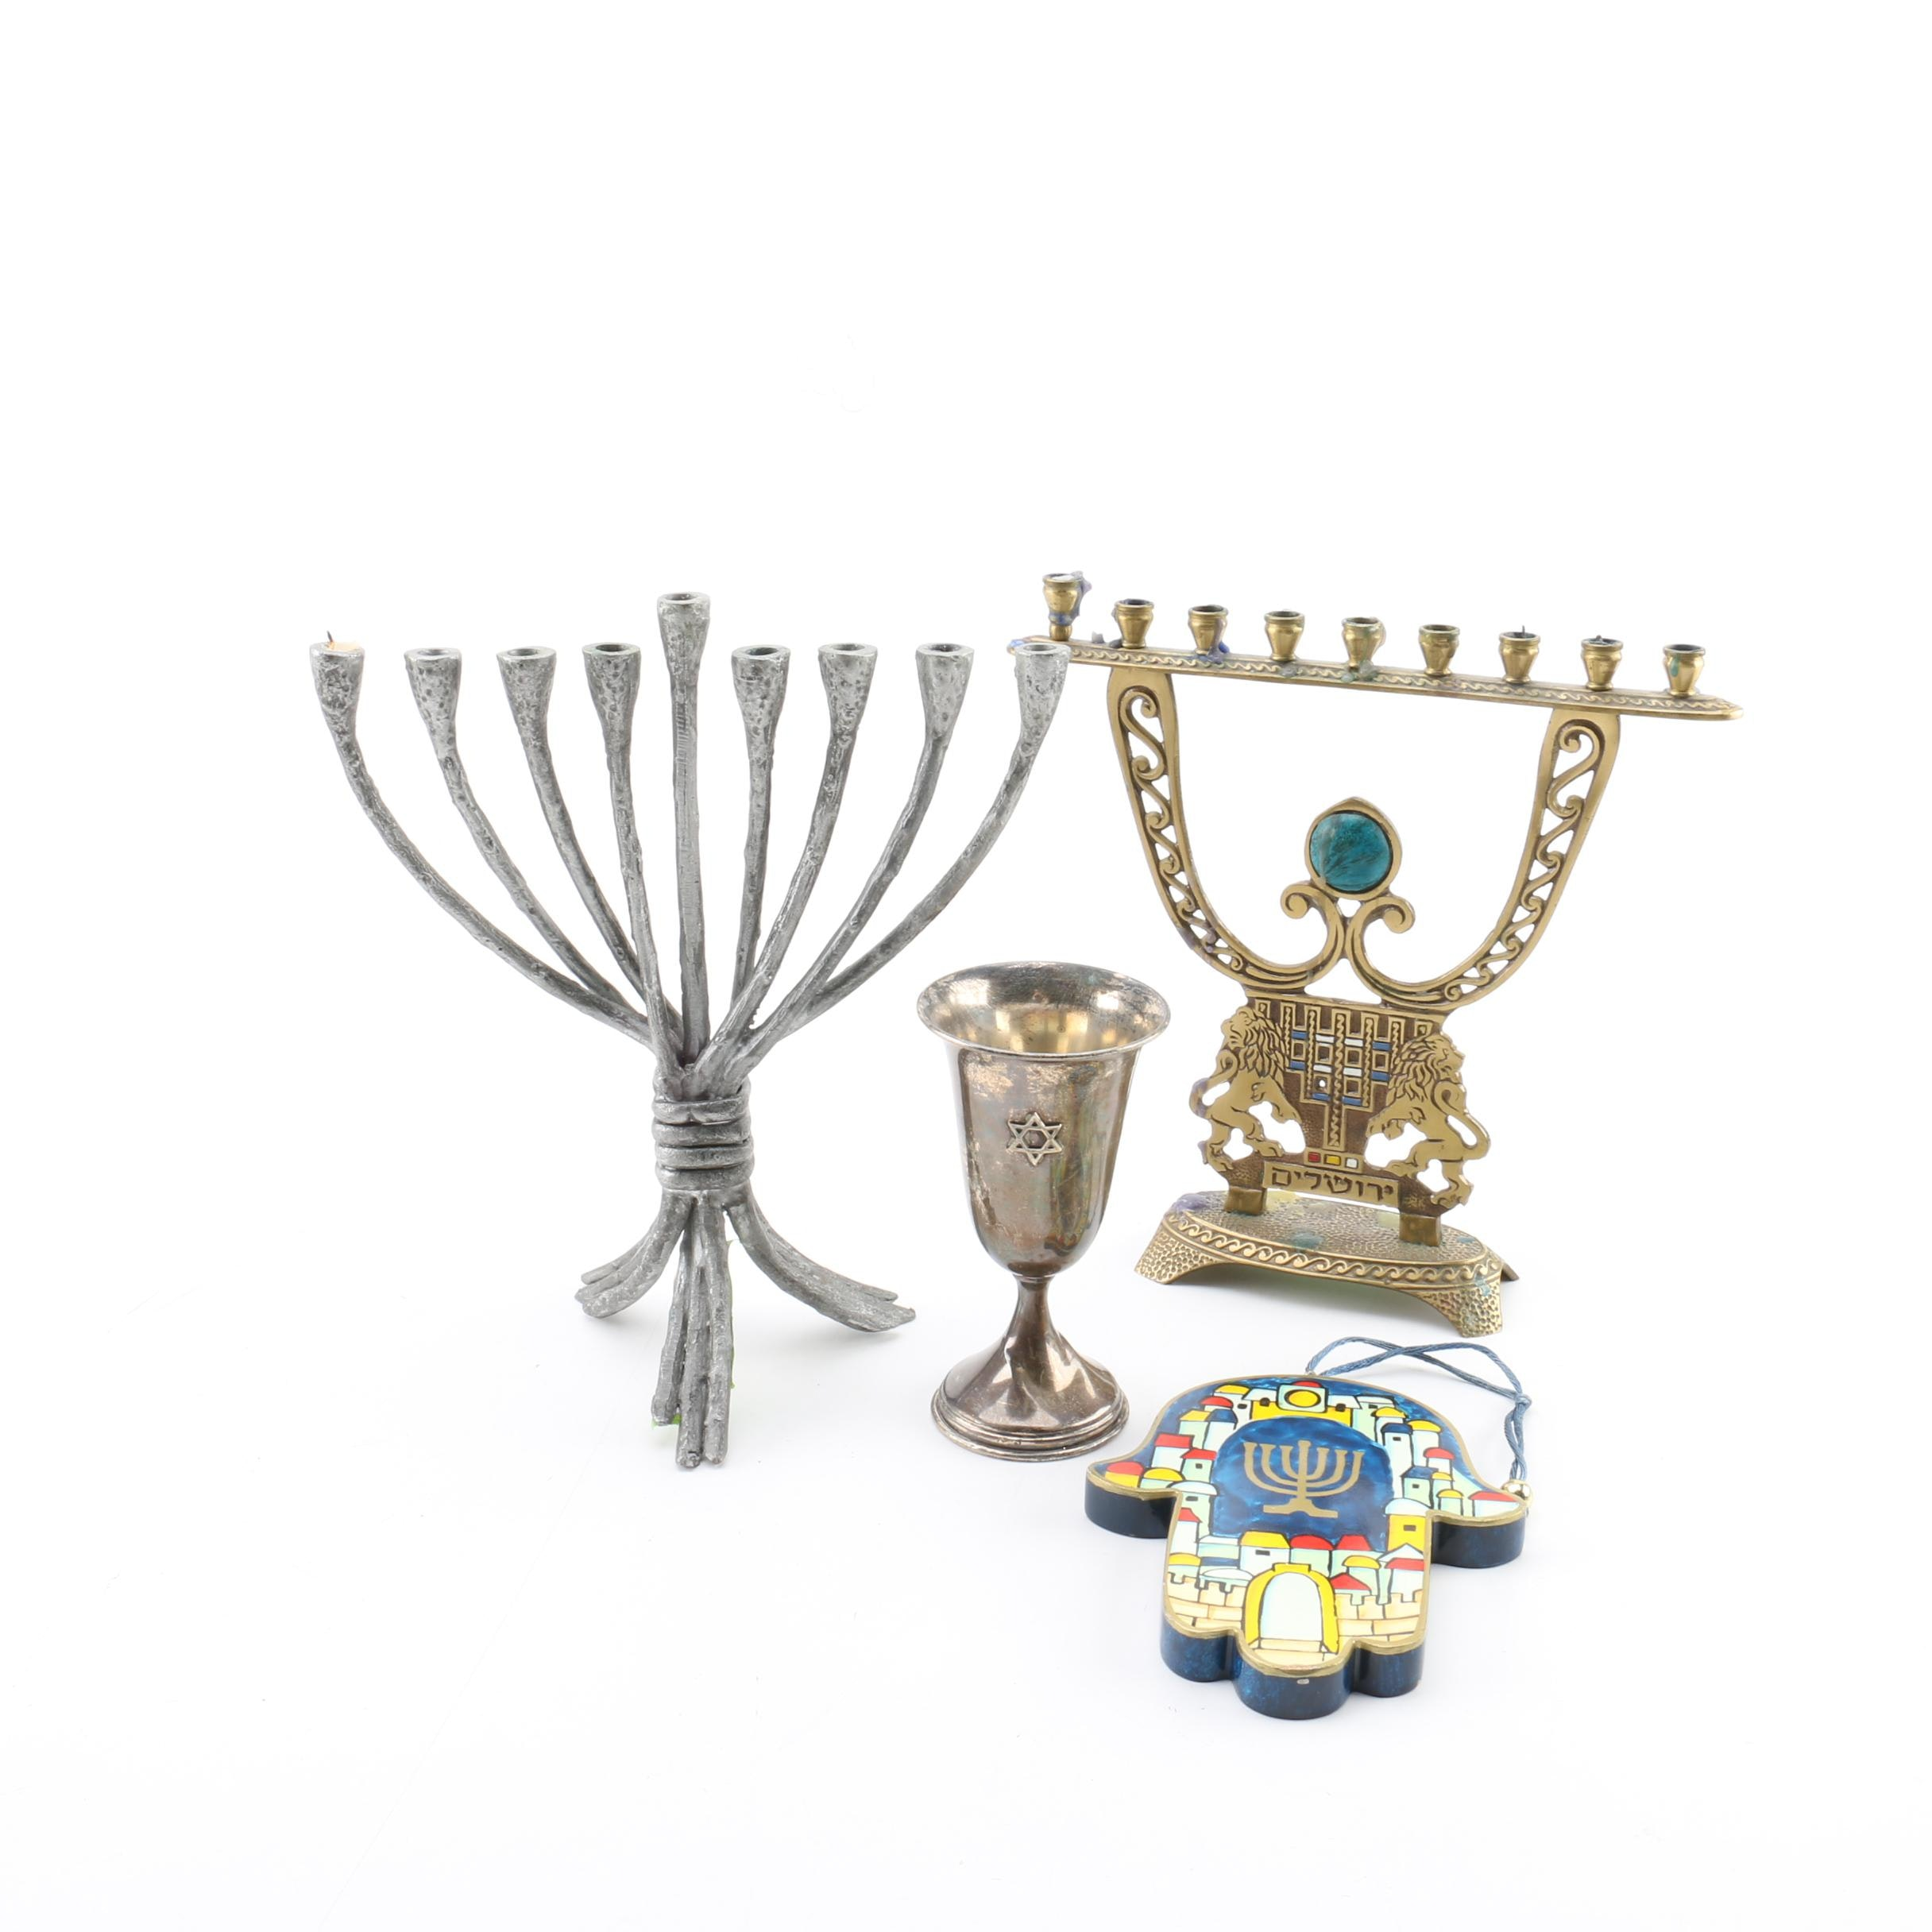 Collection of Judaica Décor including Esco Sterling Kiddush Cup and Menorahs